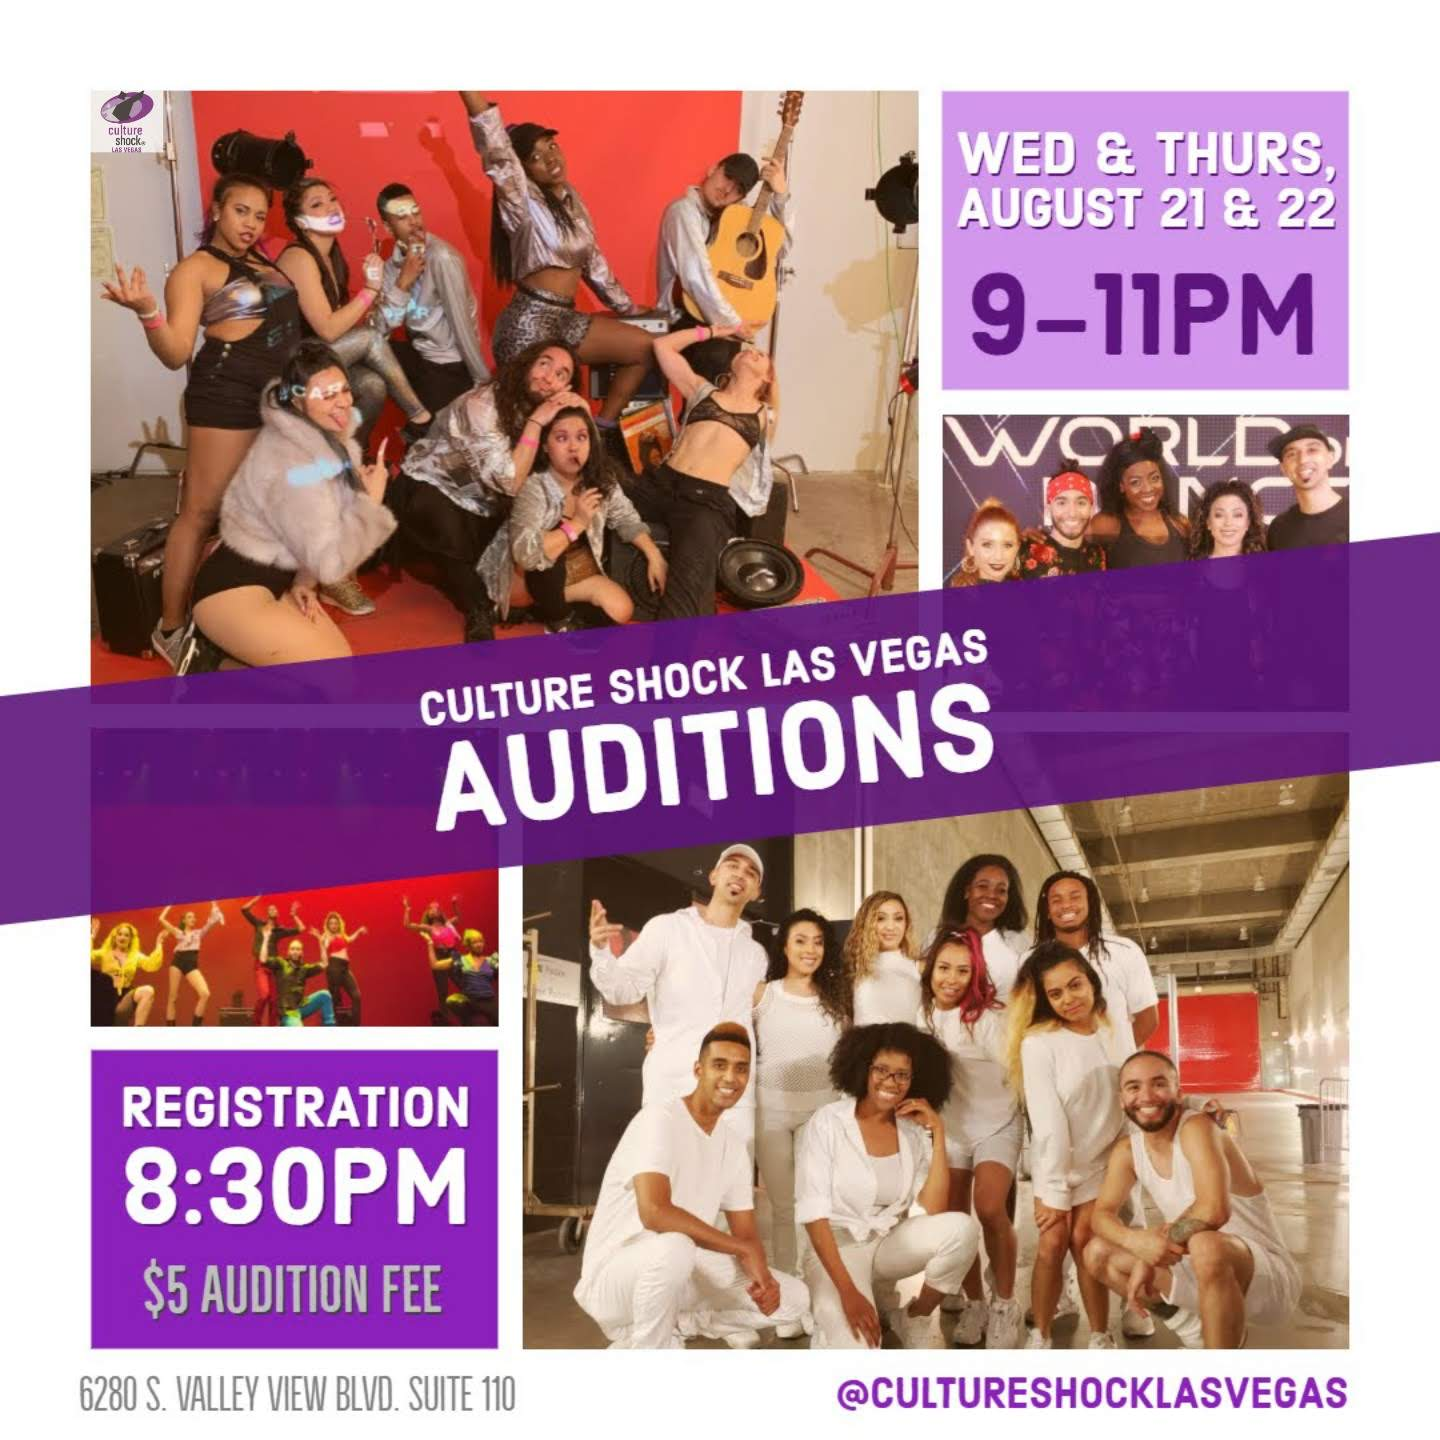 8/21-8/22 Culture Shock Las Vegas Audition